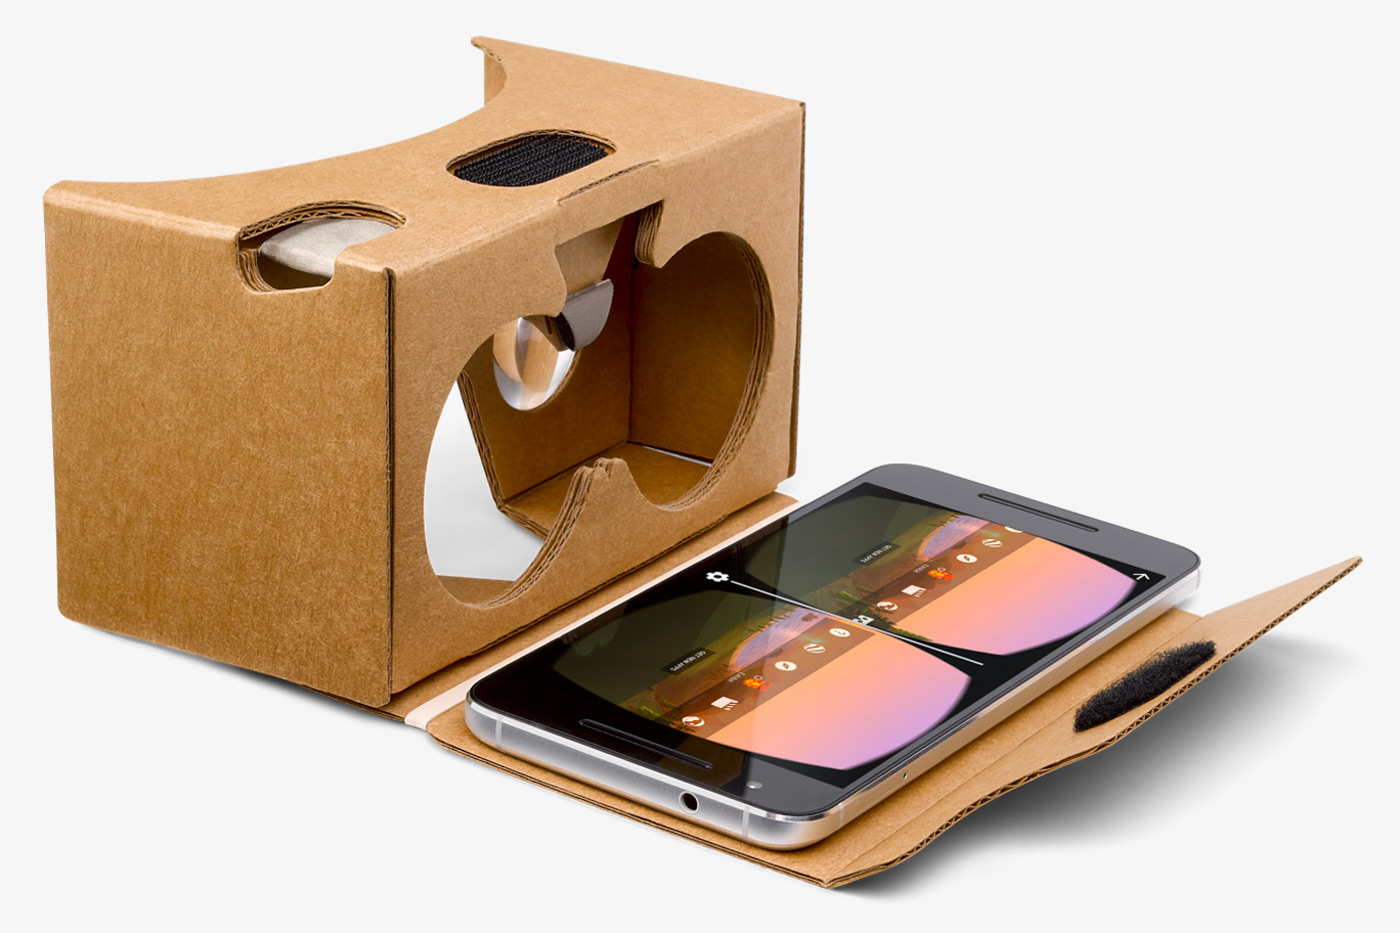 Google's own Cardboard viewer arrives in four more countries